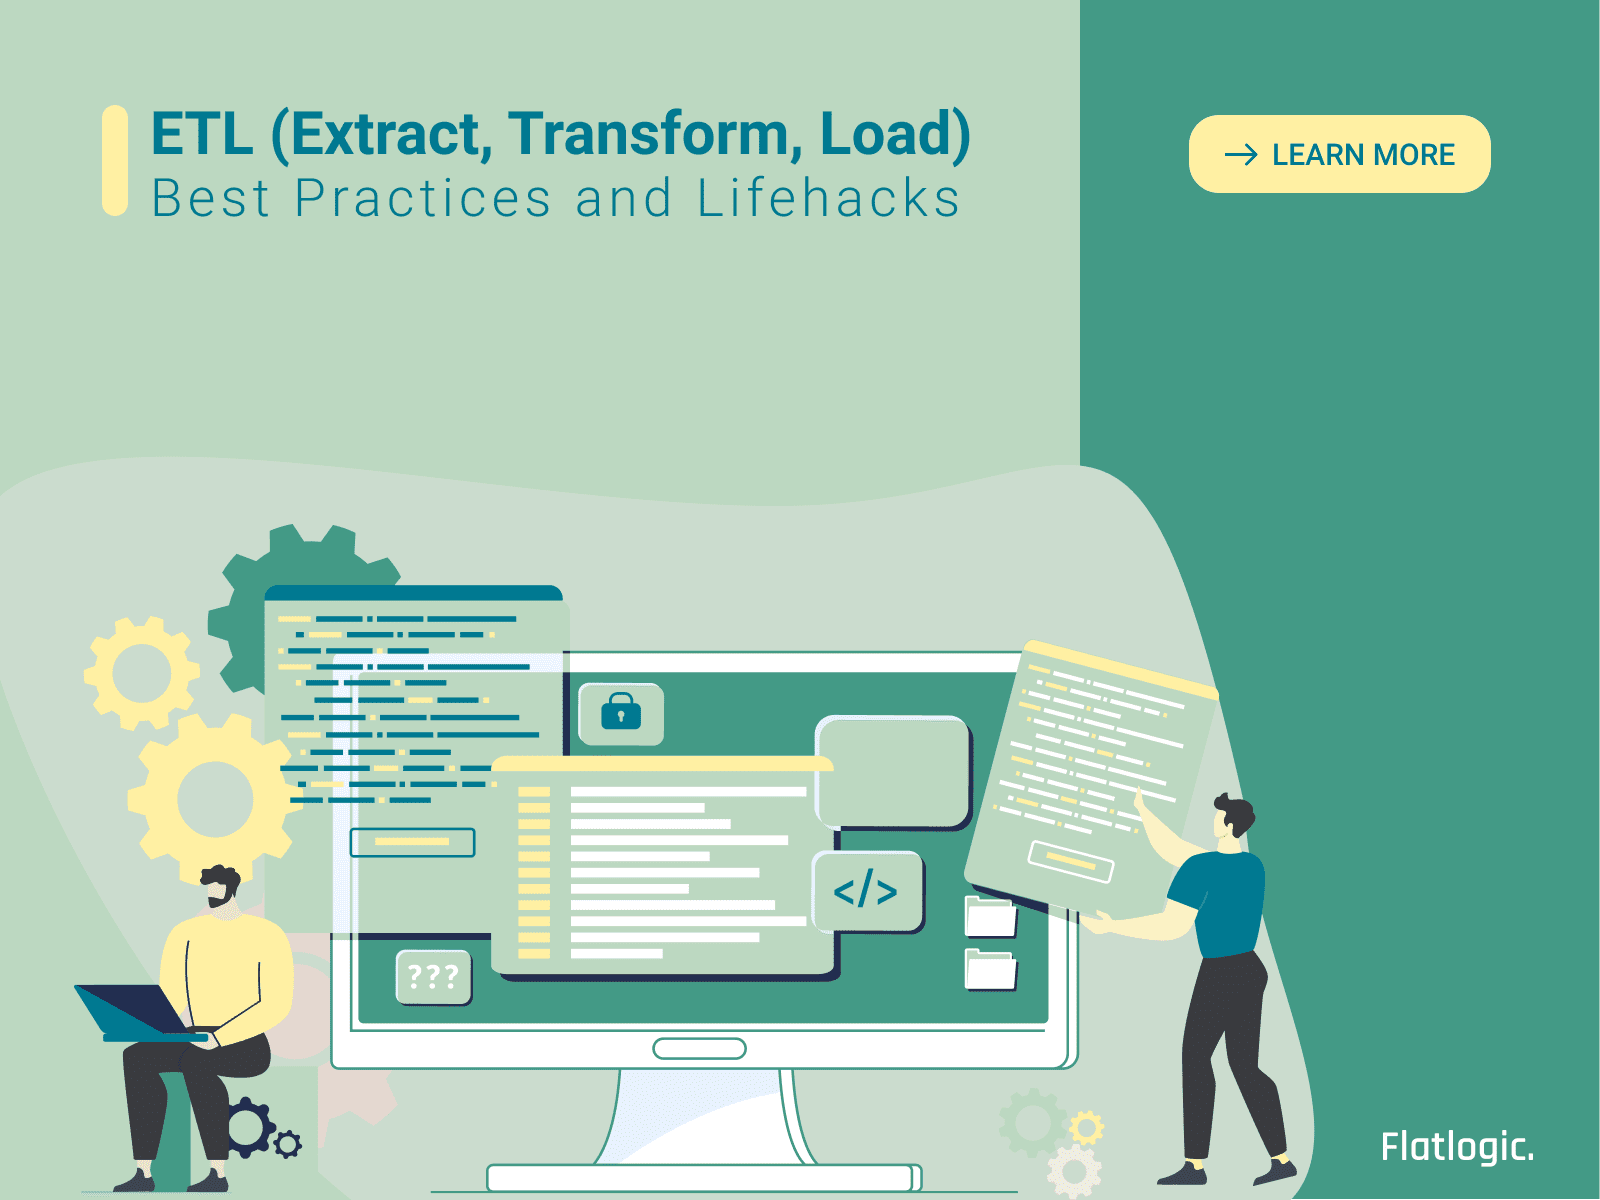 ETL (Extract, Transform, Load). Best Practices ETL Process and Lifehacks